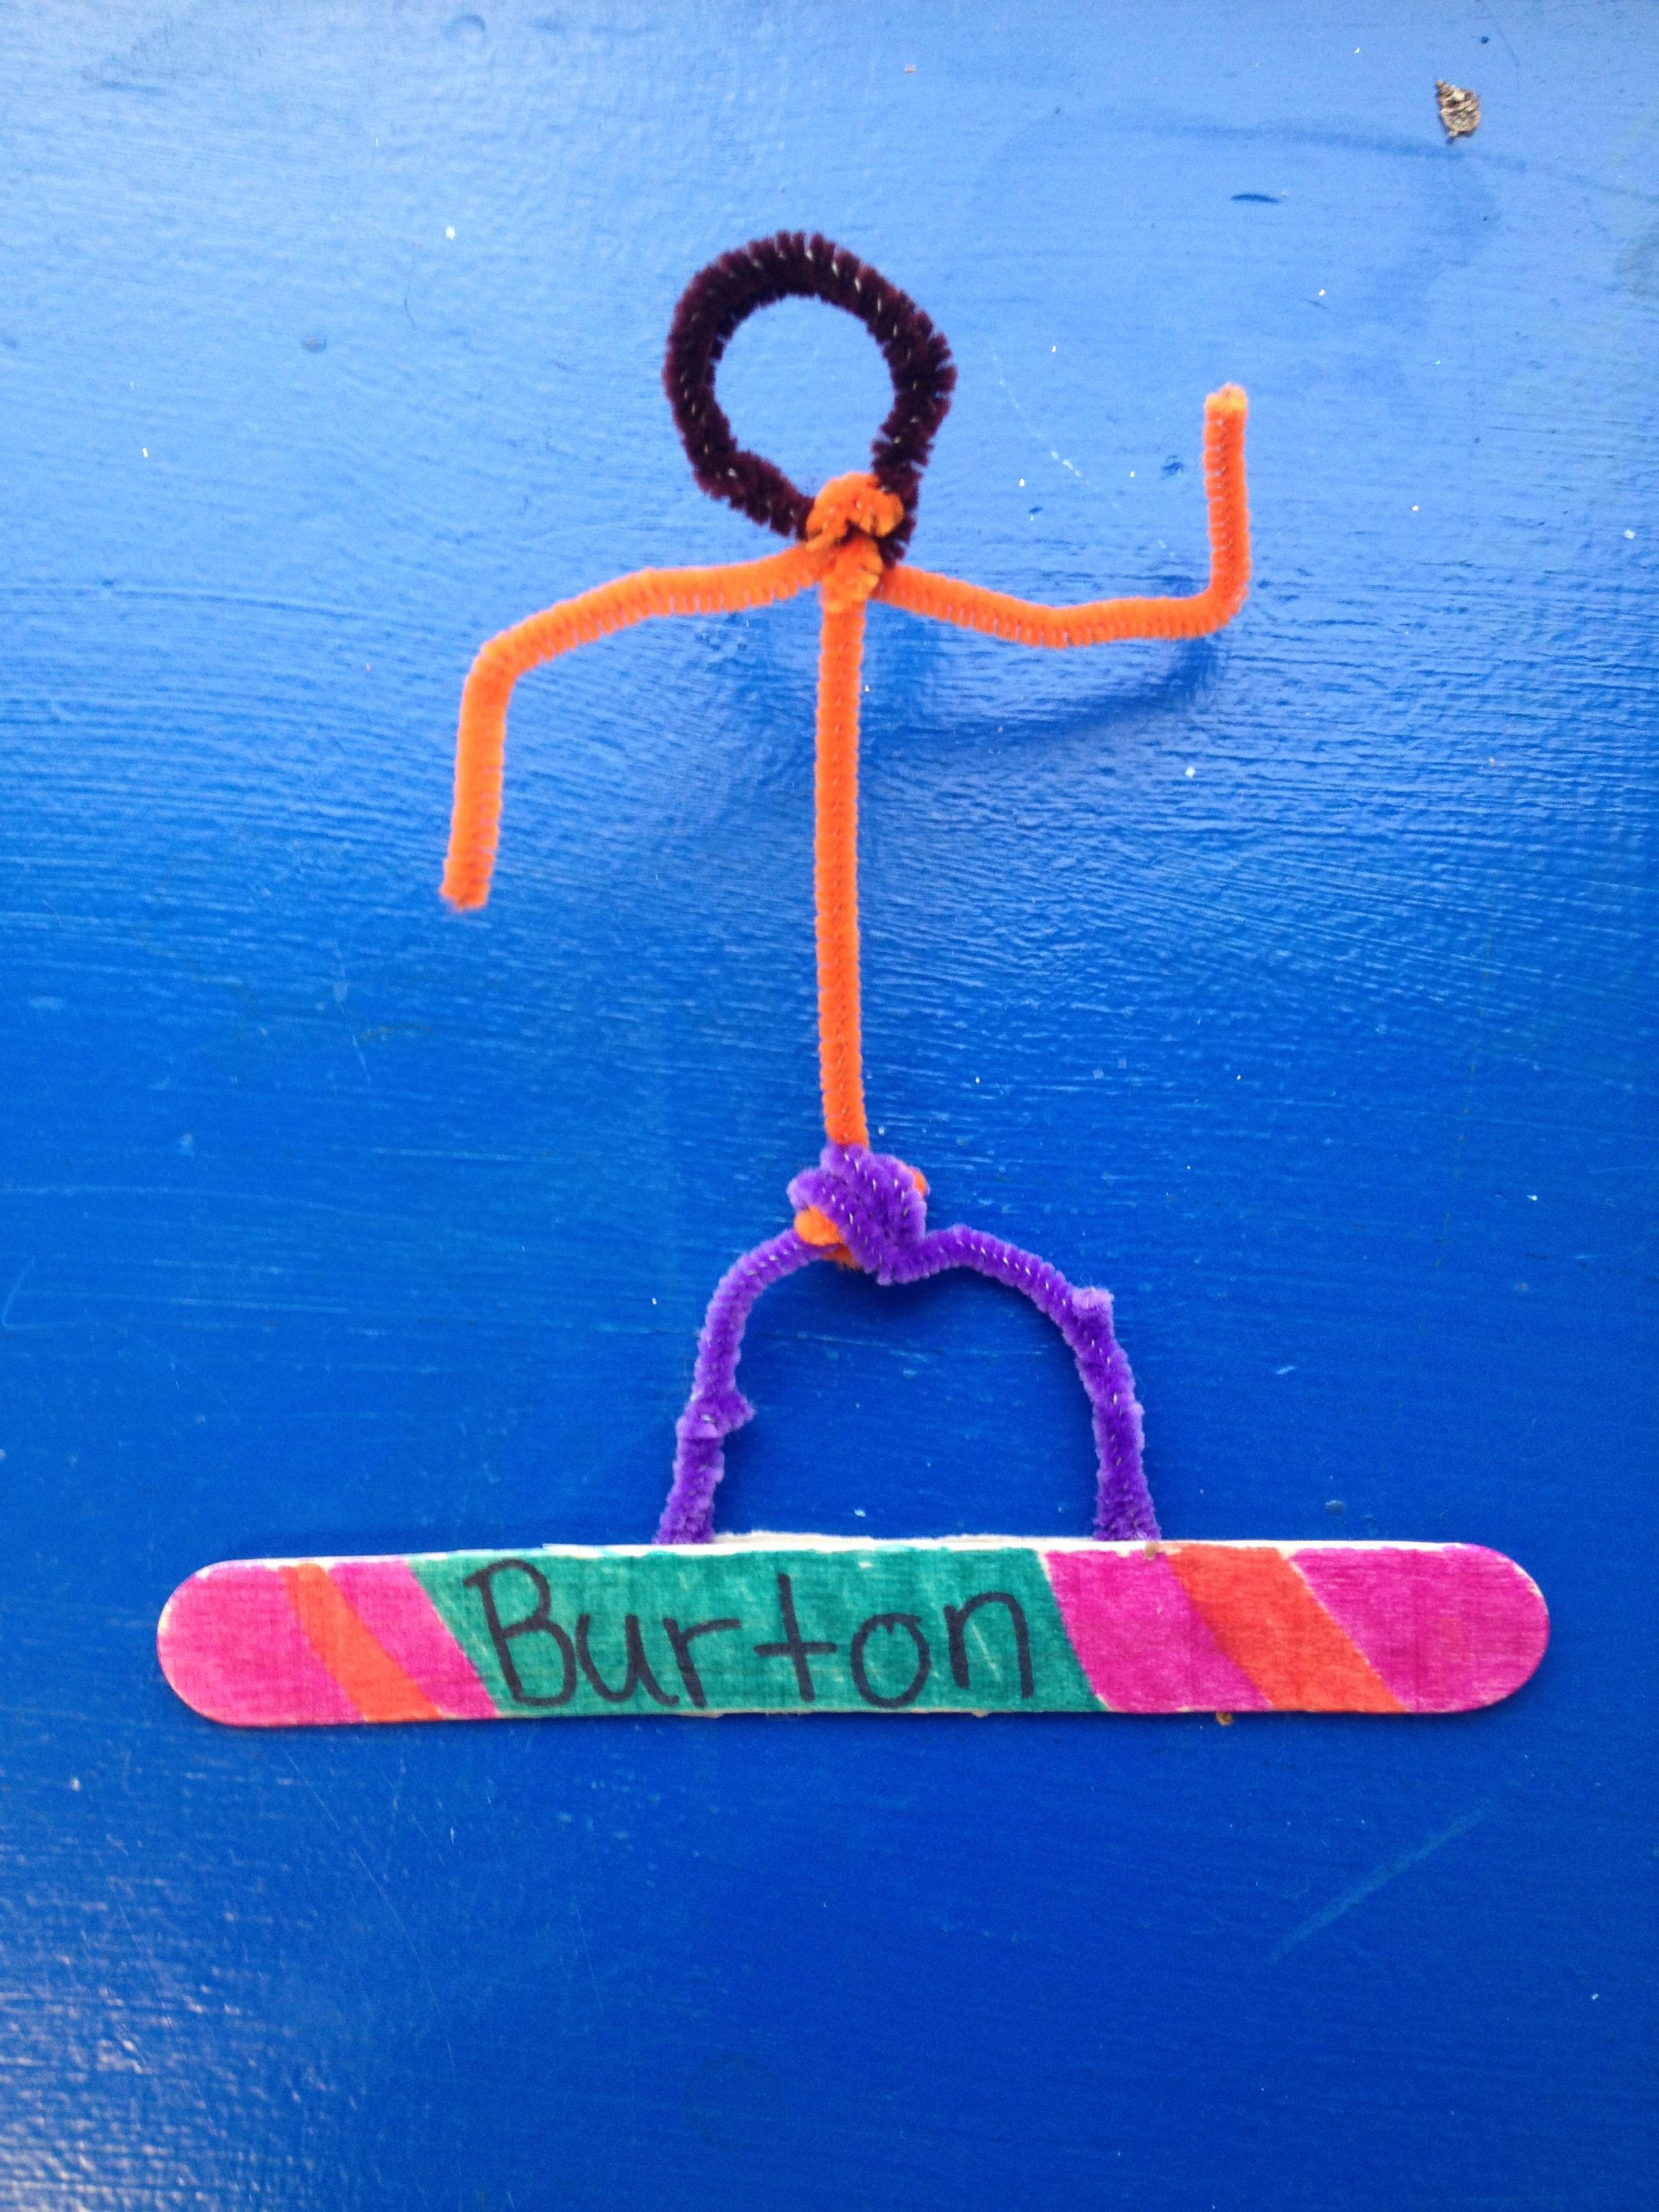 Pipe Cleaner Olympic Snowboard Craft